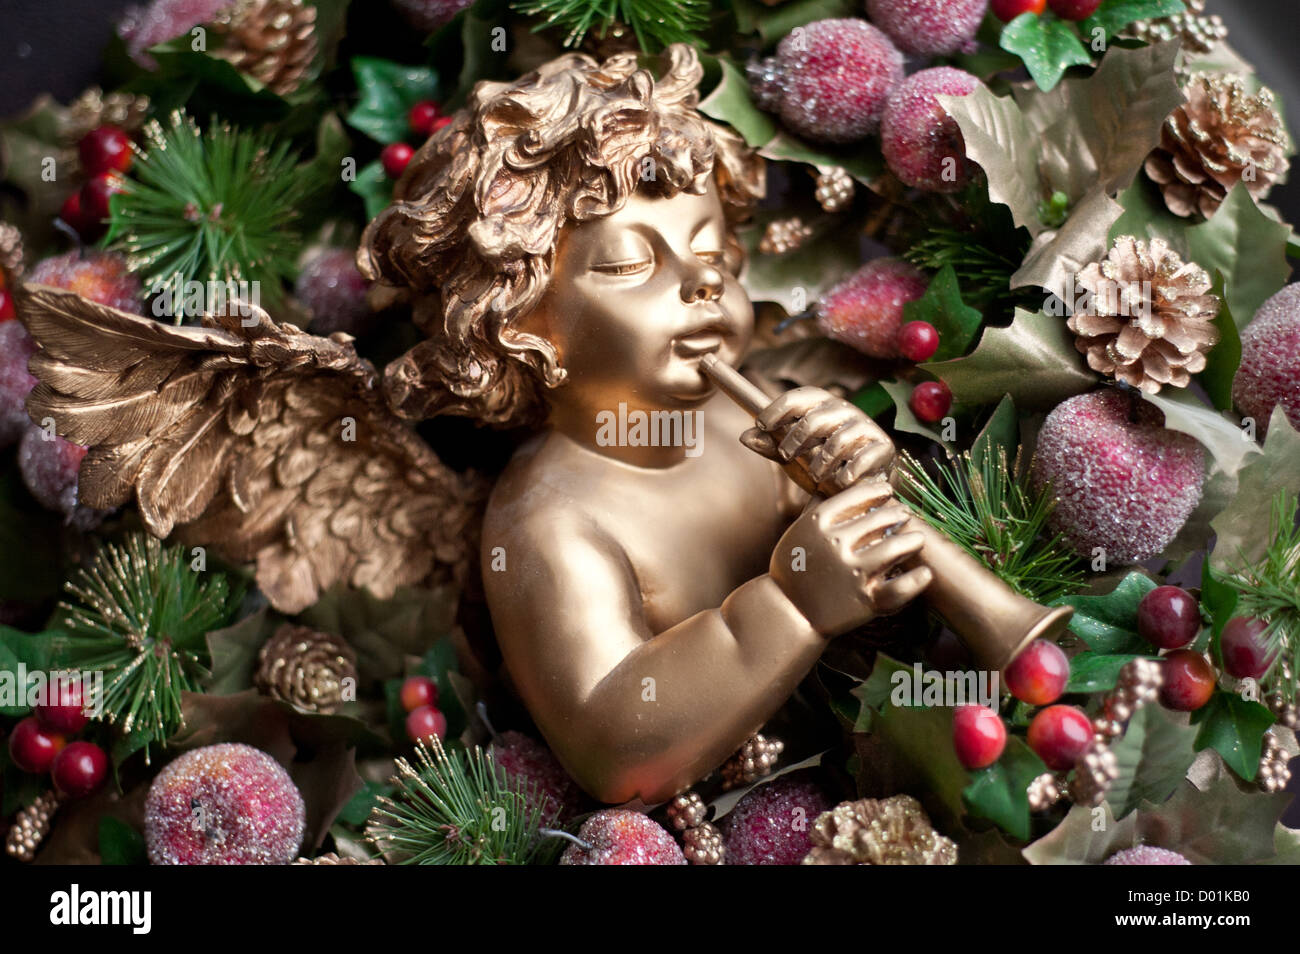 Musical christmas ornaments that play music - Gold Christmas Xmas Cherub Angel Playing Music Through A Fluted Flute Musical Instrument